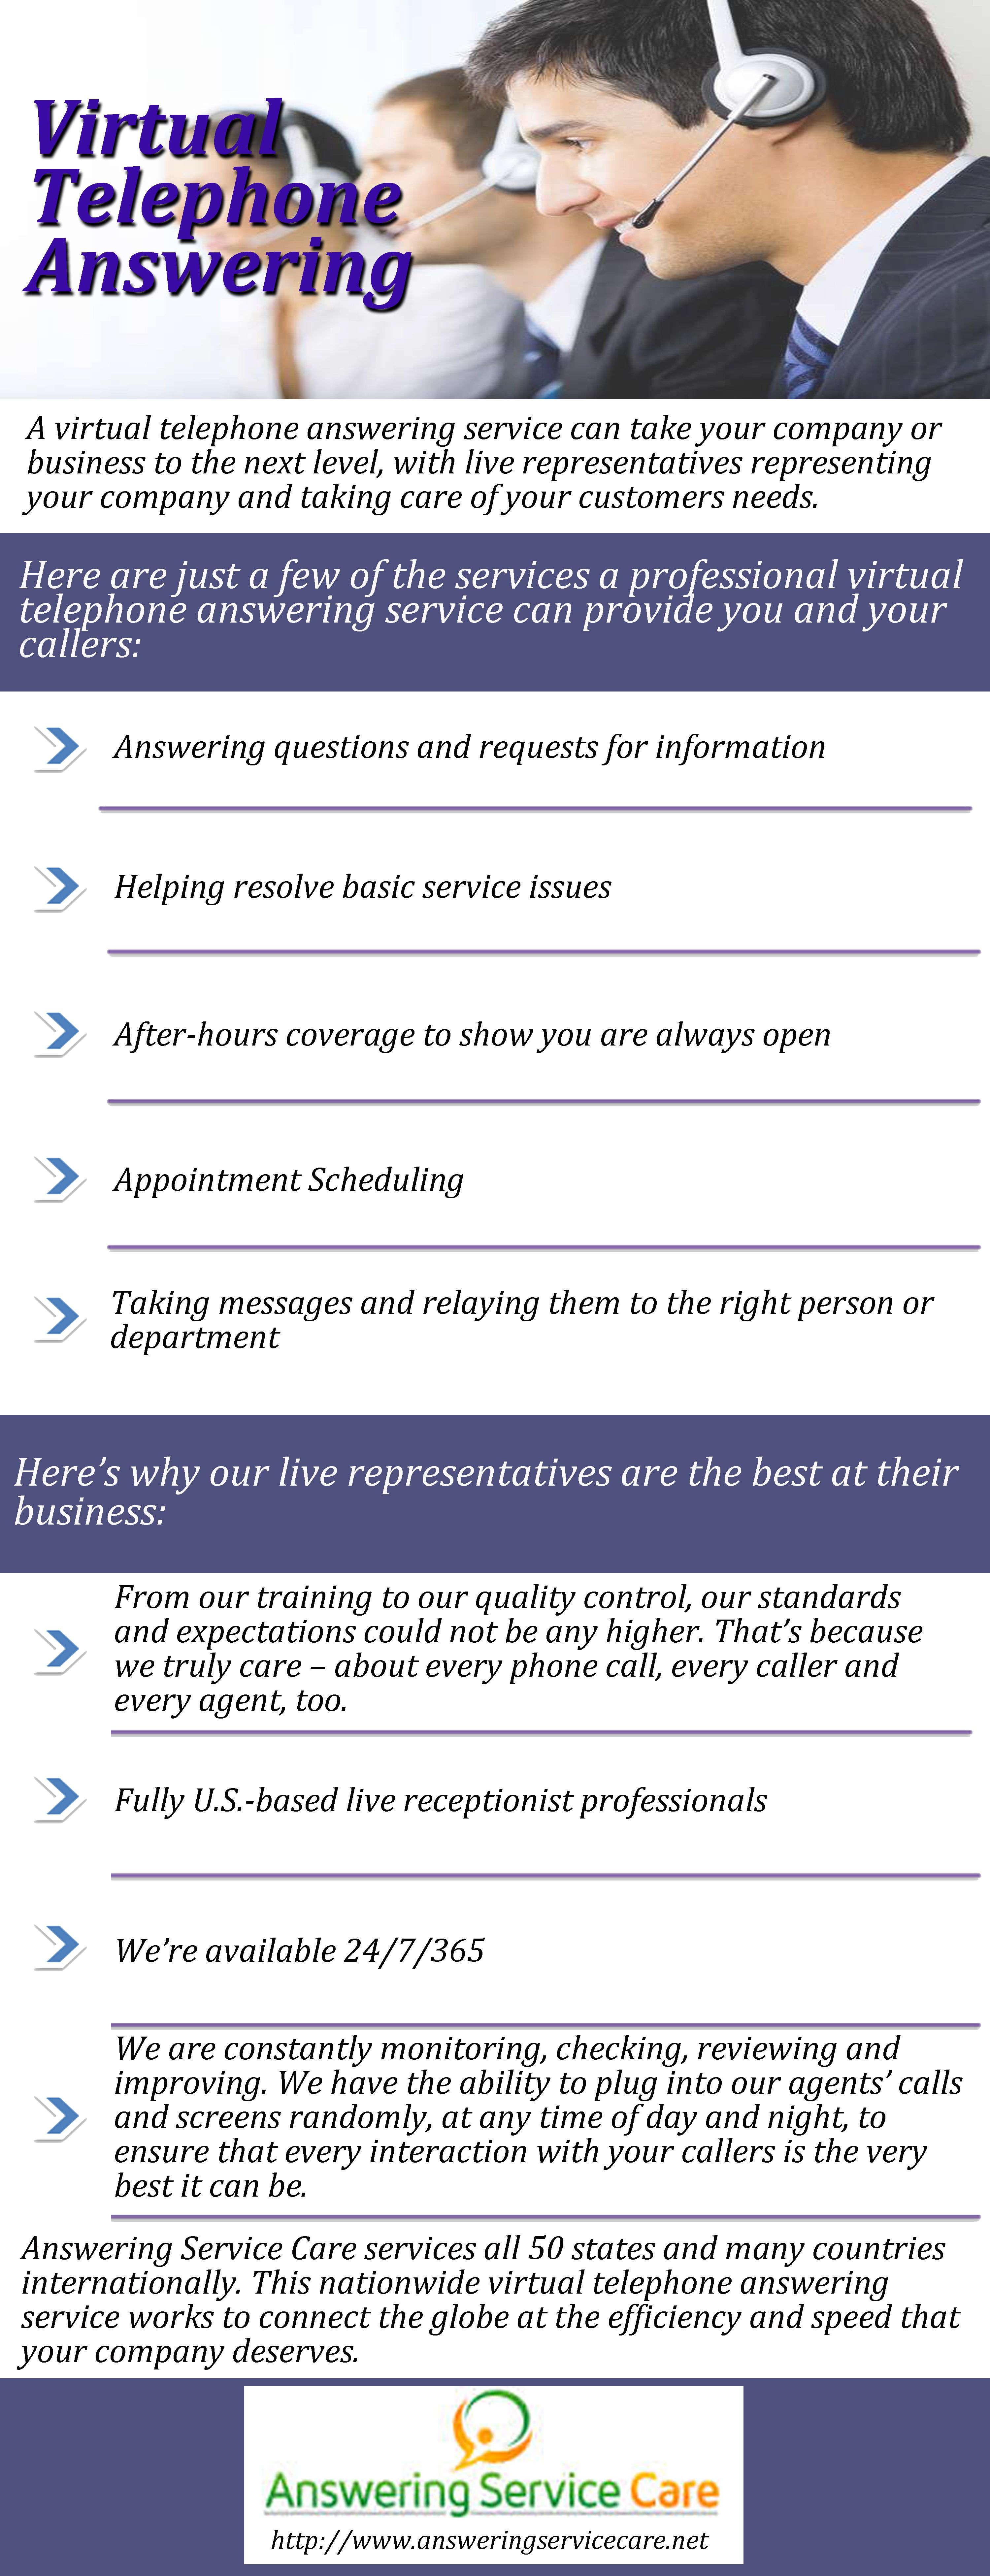 Home2 answering service telephone